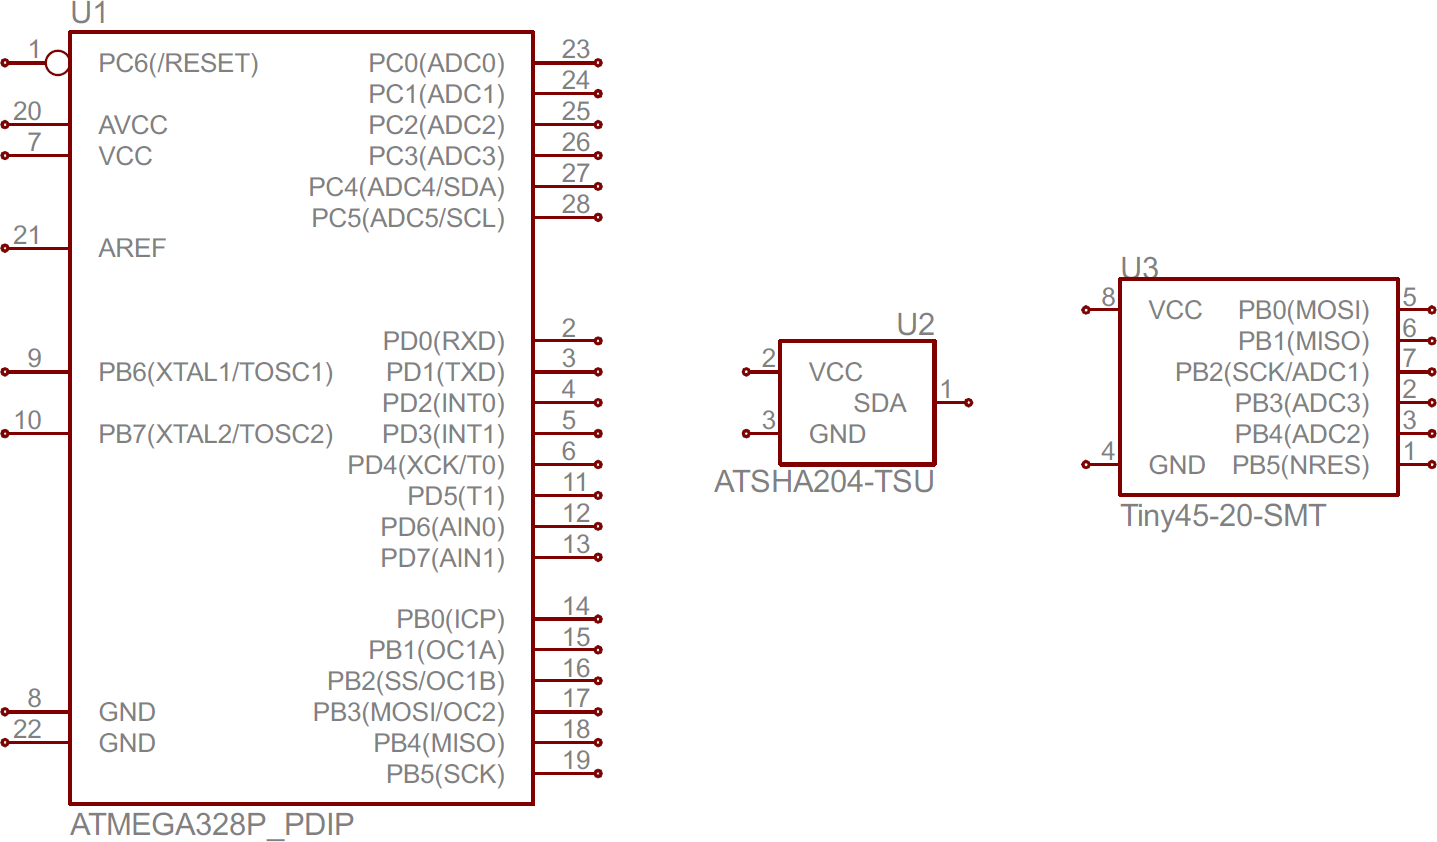 51cc9e55ce395f7f69000001 how to read a schematic learn sparkfun com basic electrical schematic diagrams at aneh.co